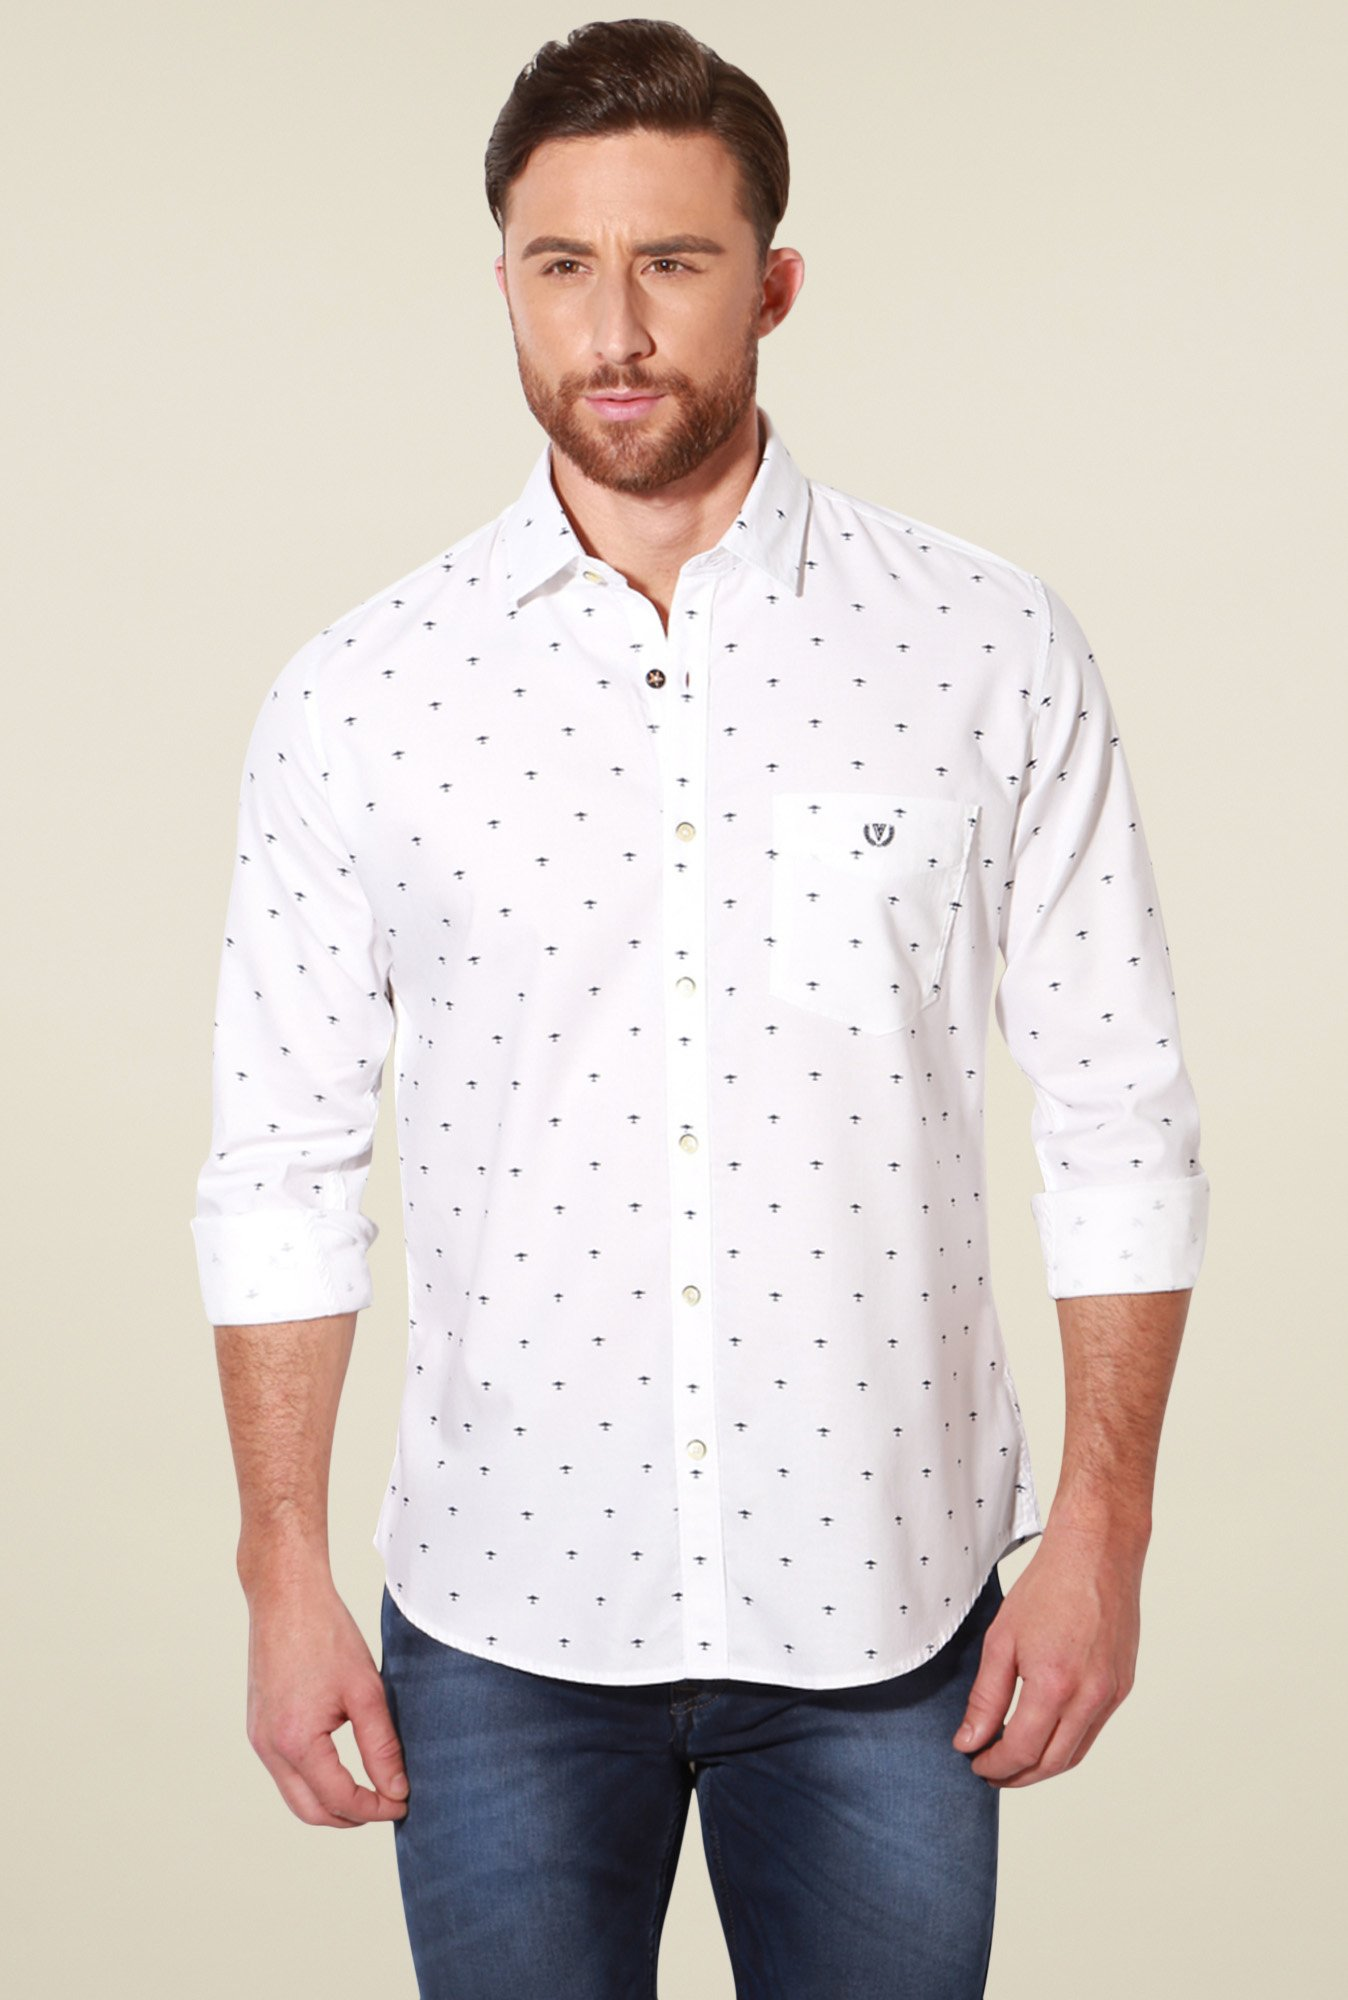 Van Heusen White Slim Fit Cotton Printed Shirt